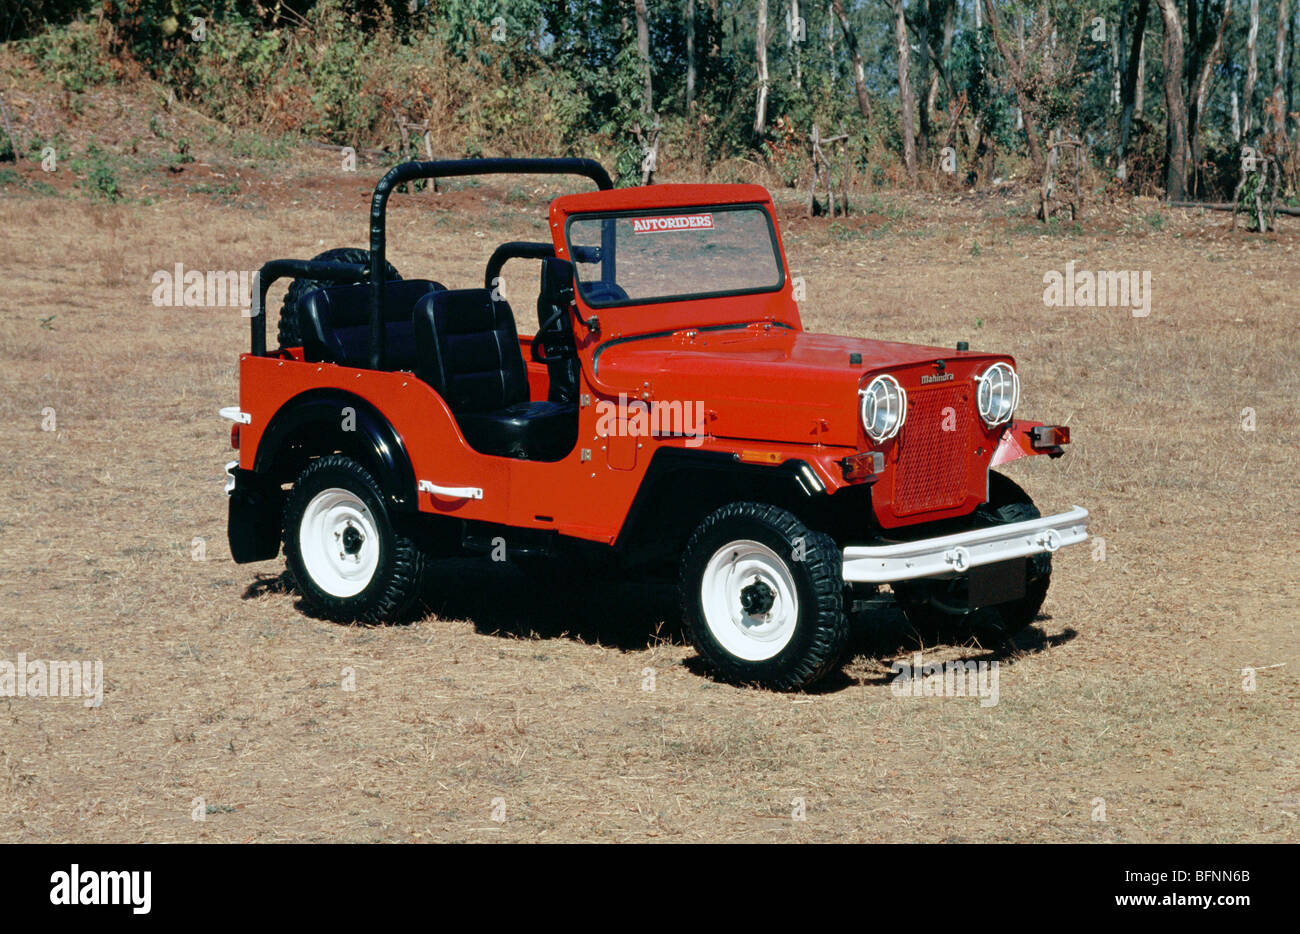 Mahindra Jeep Stock Photos Amp Mahindra Jeep Stock Images